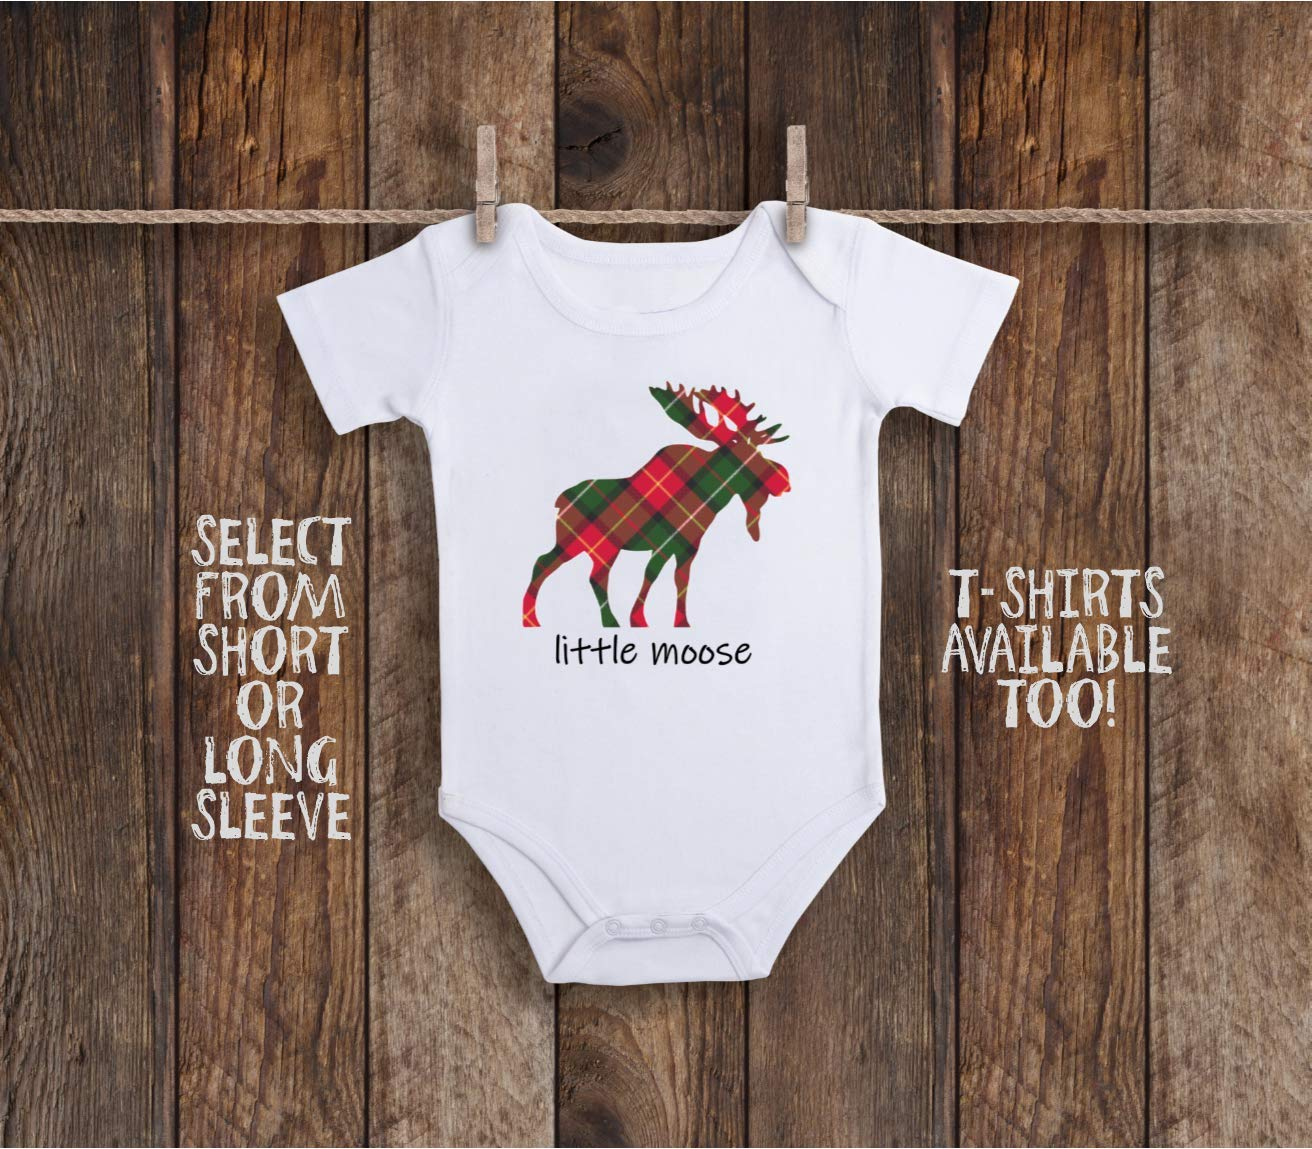 Little Moose Baby Bodysuit For Daddys Future Hunting Buddy, Elk Woodland Animals, Flannel Plaid